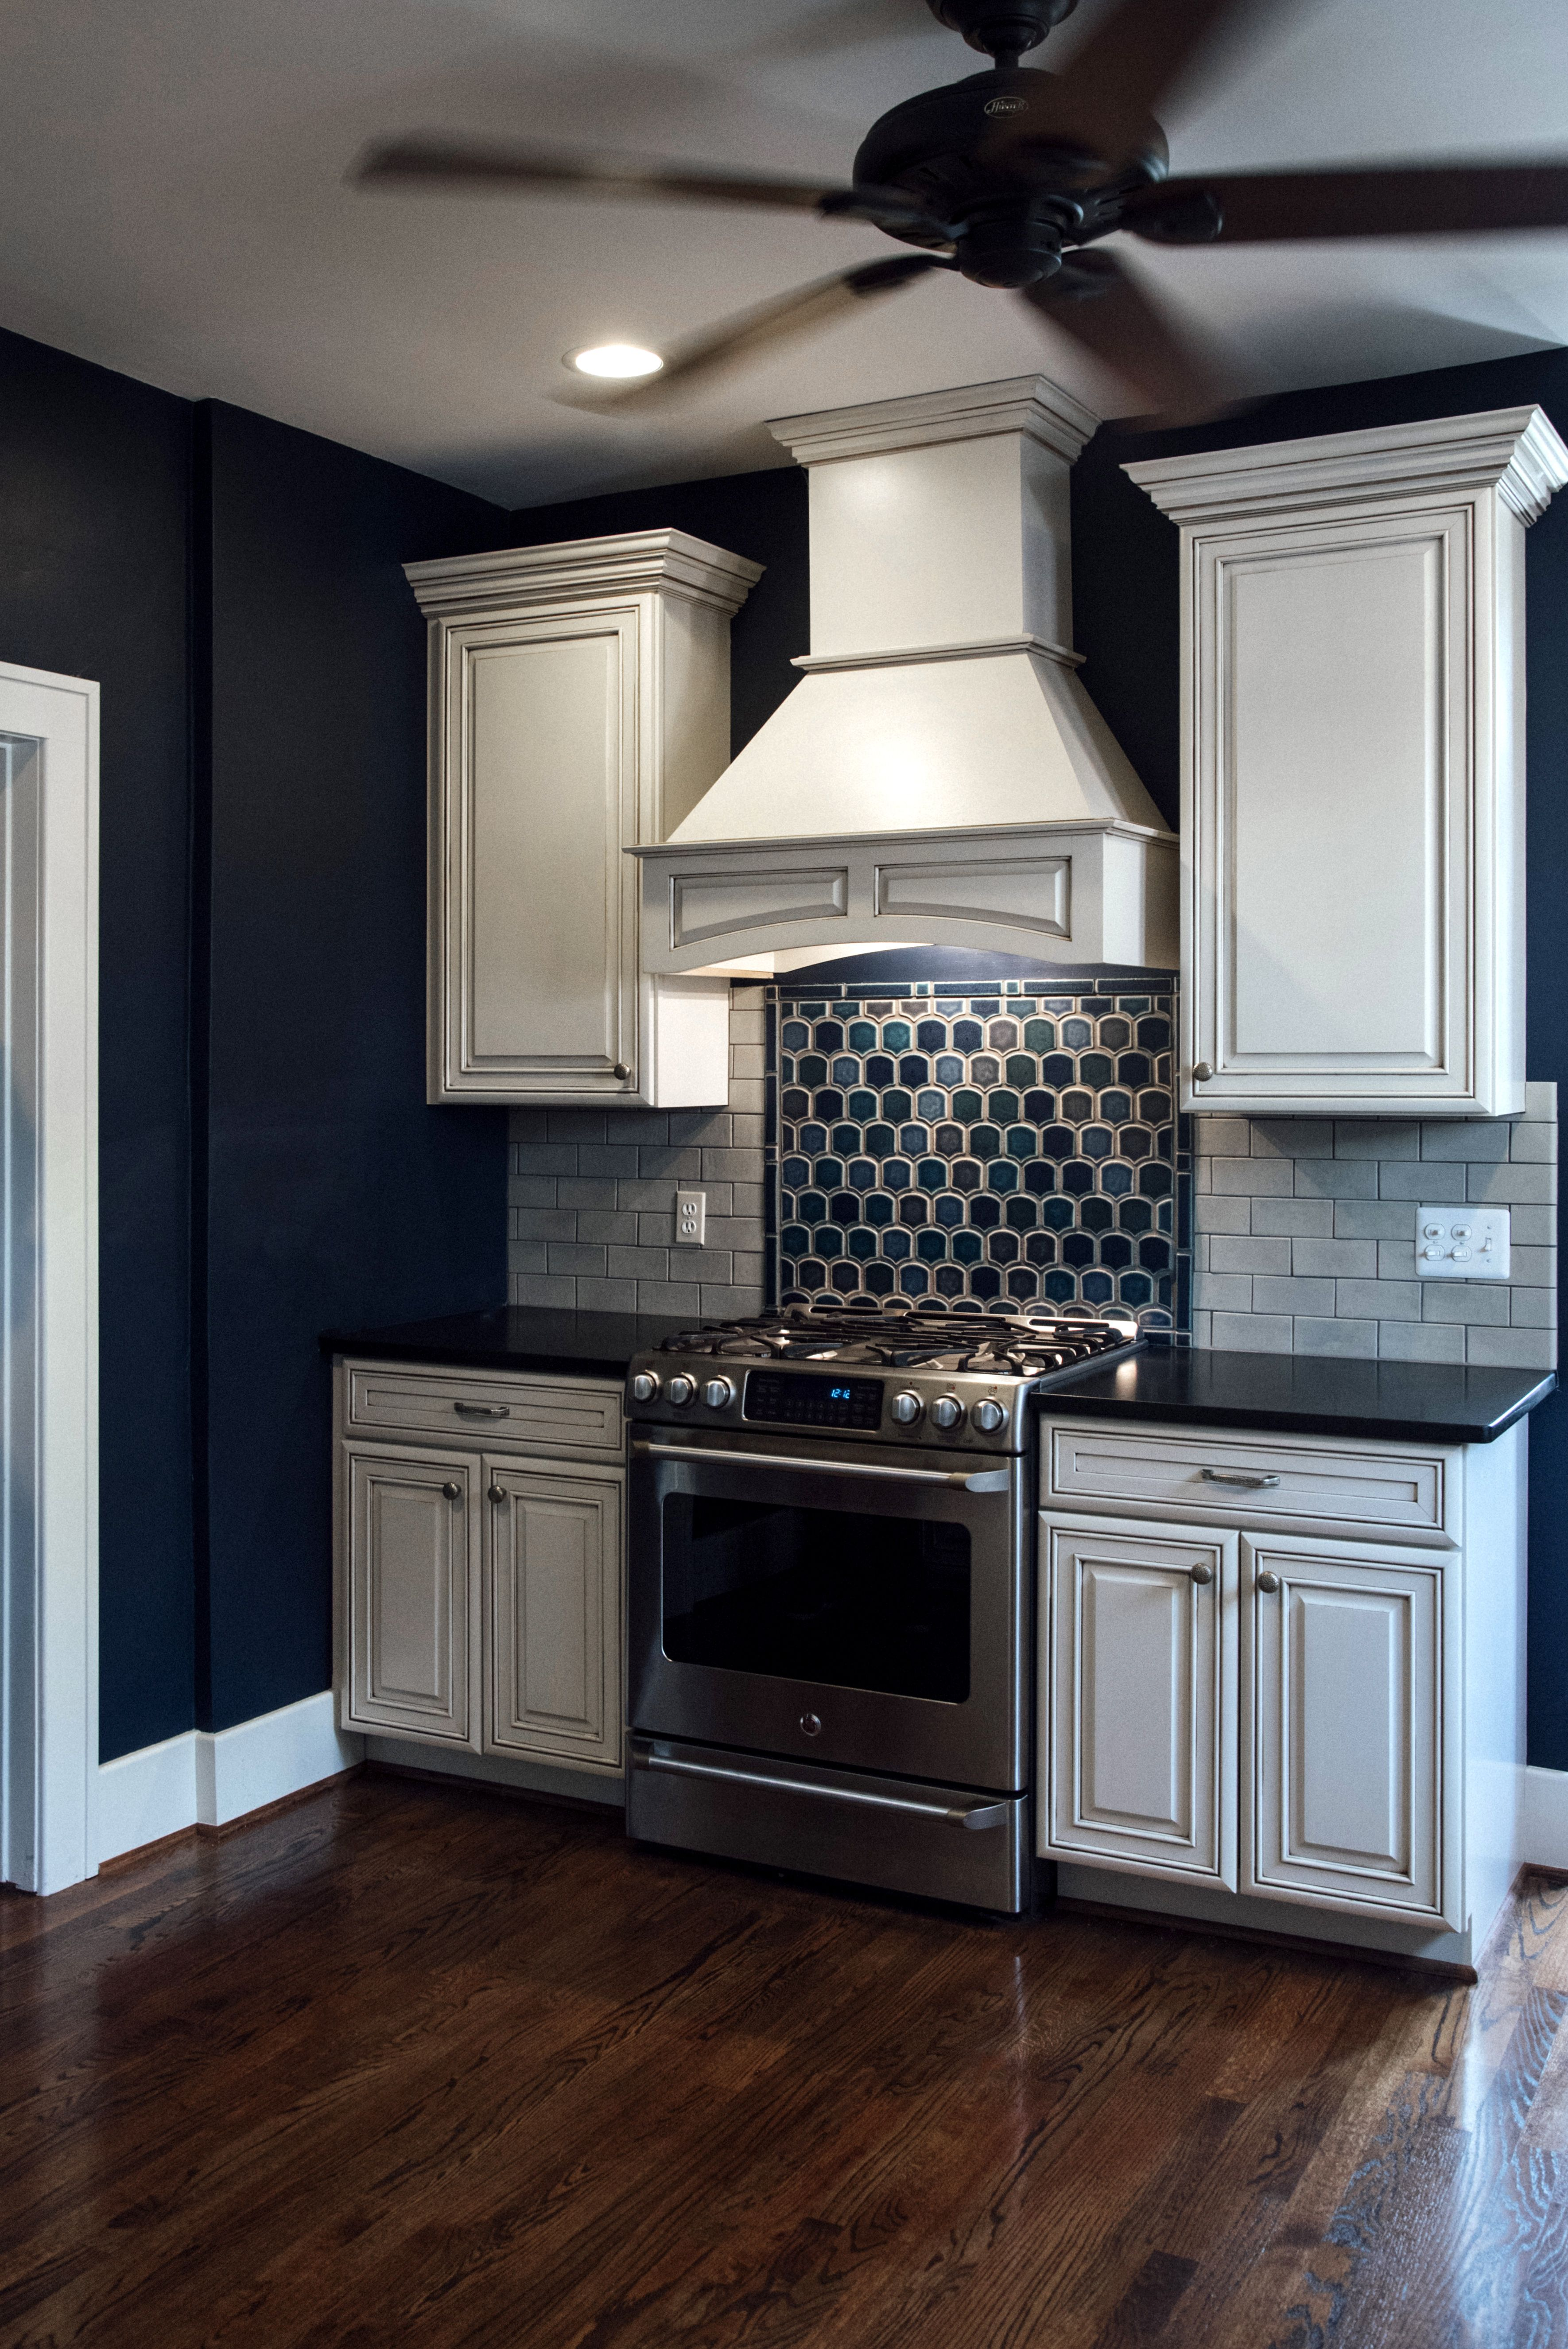 Pewabic backsplash new home pinterest studio and house dailygadgetfo Choice Image